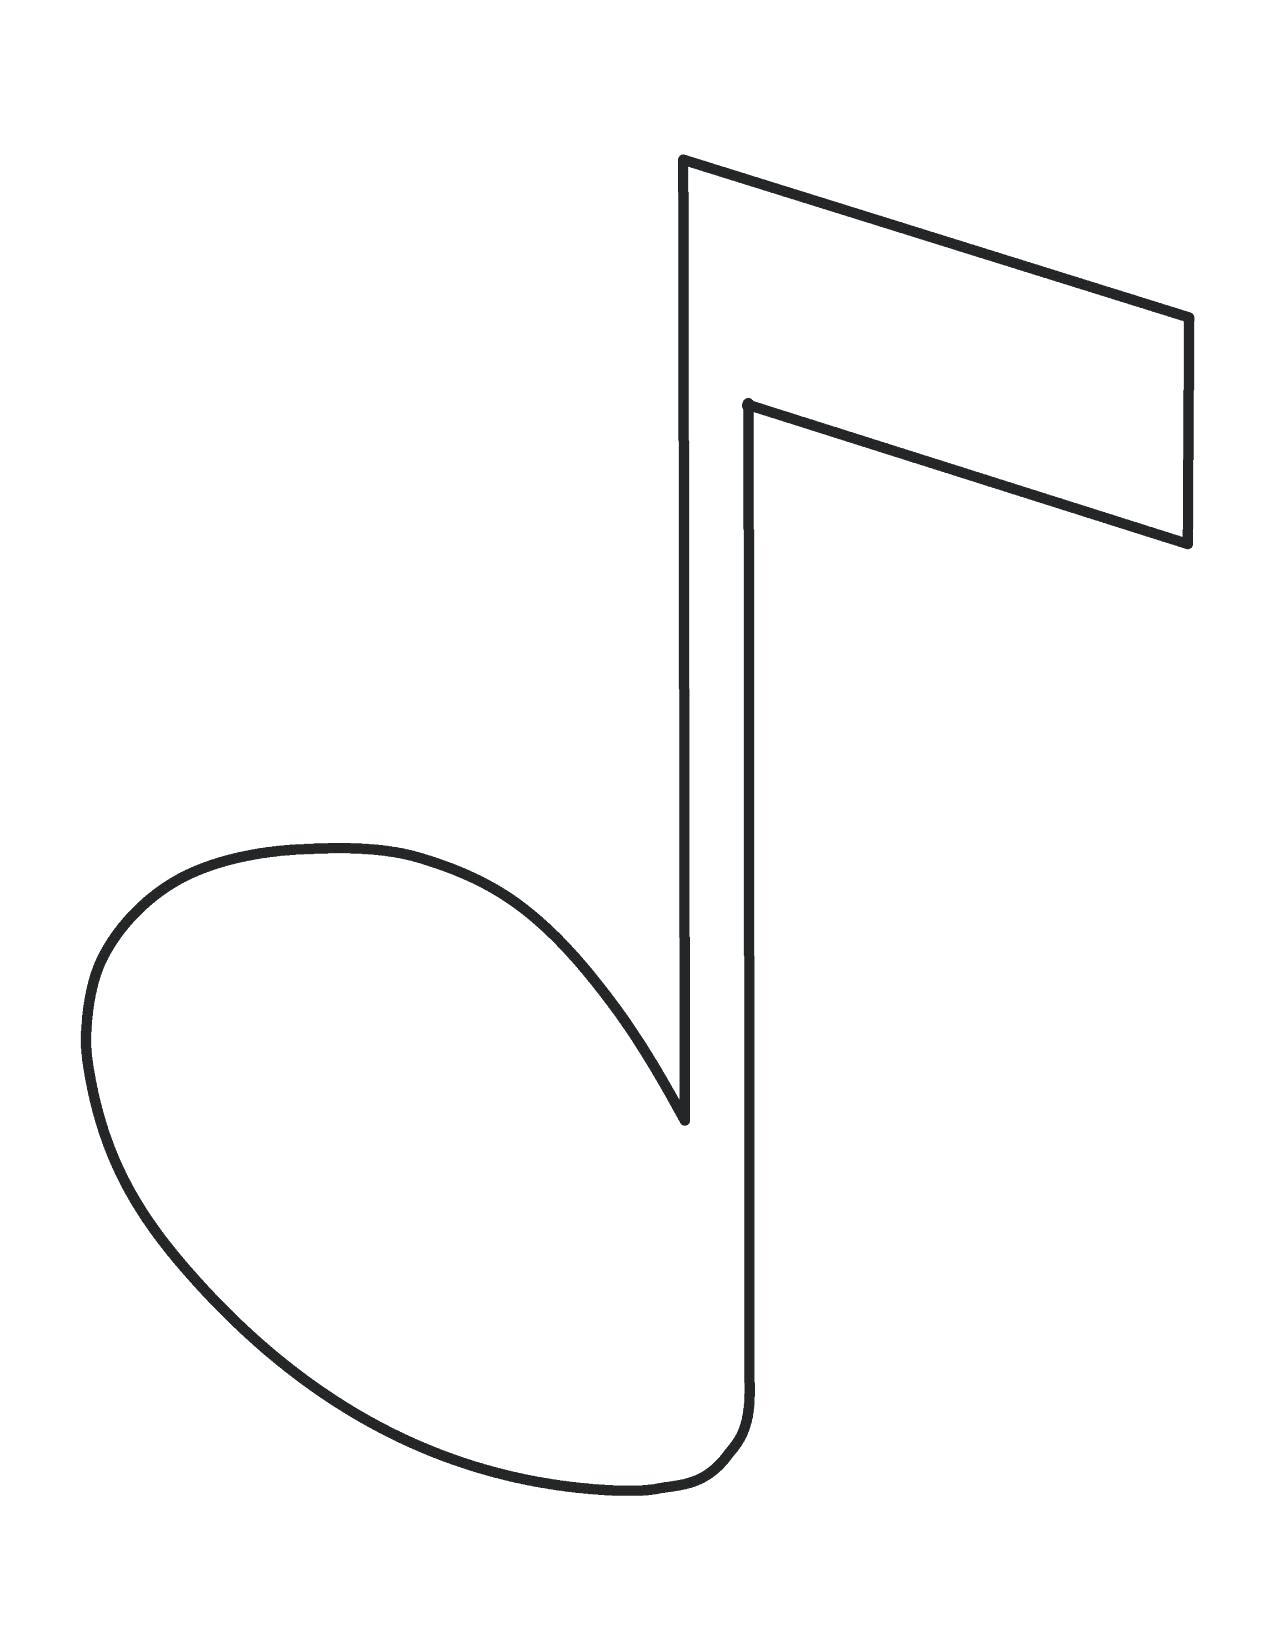 Printable Music Notes | Free download best Printable Music Notes on ...